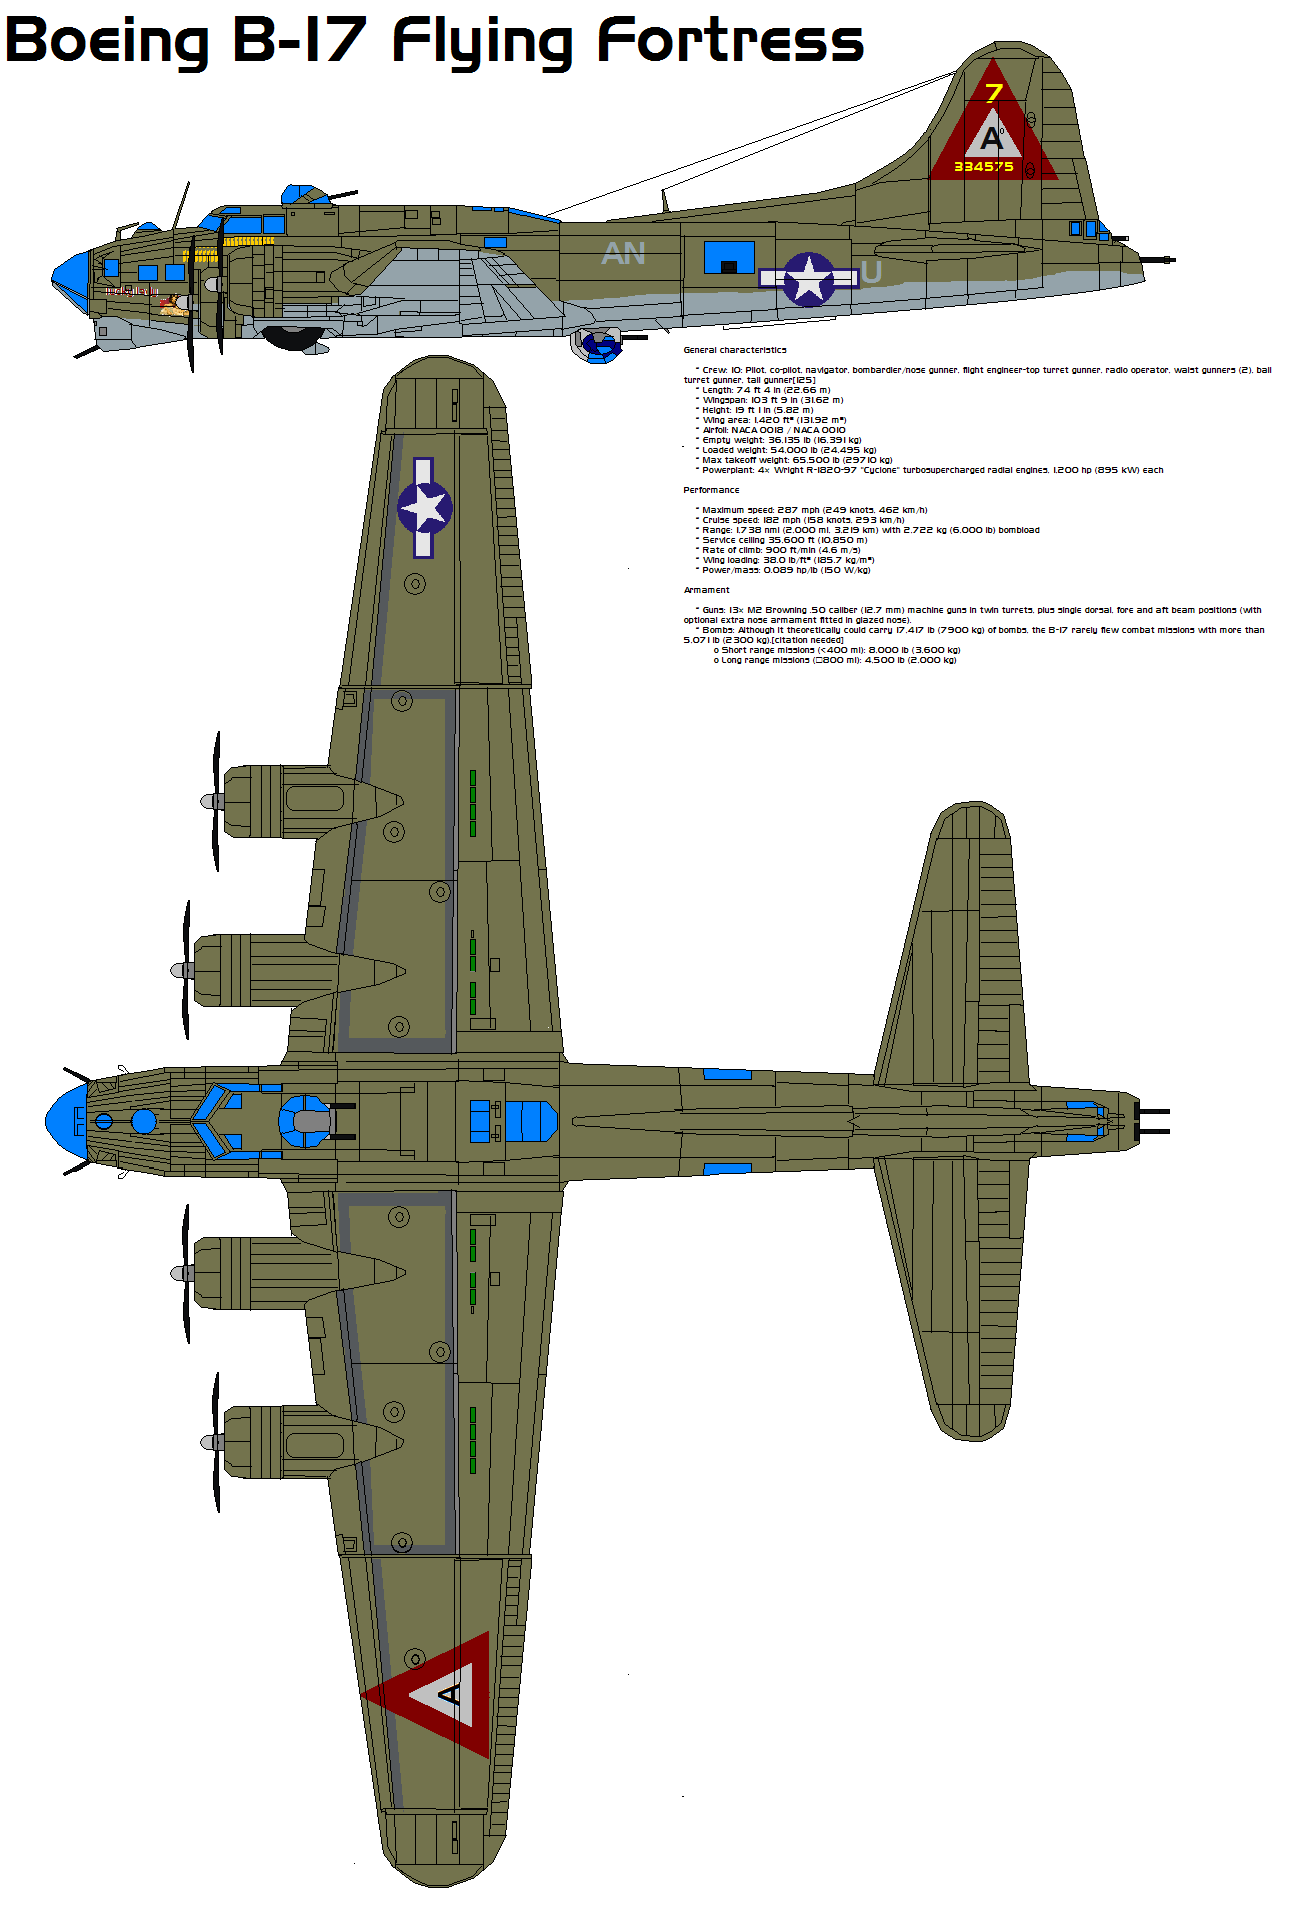 17 Best Images About Kylie Kristen Jenner On Pinterest: B-17 Flying Fortress By Bagera3005 On DeviantArt